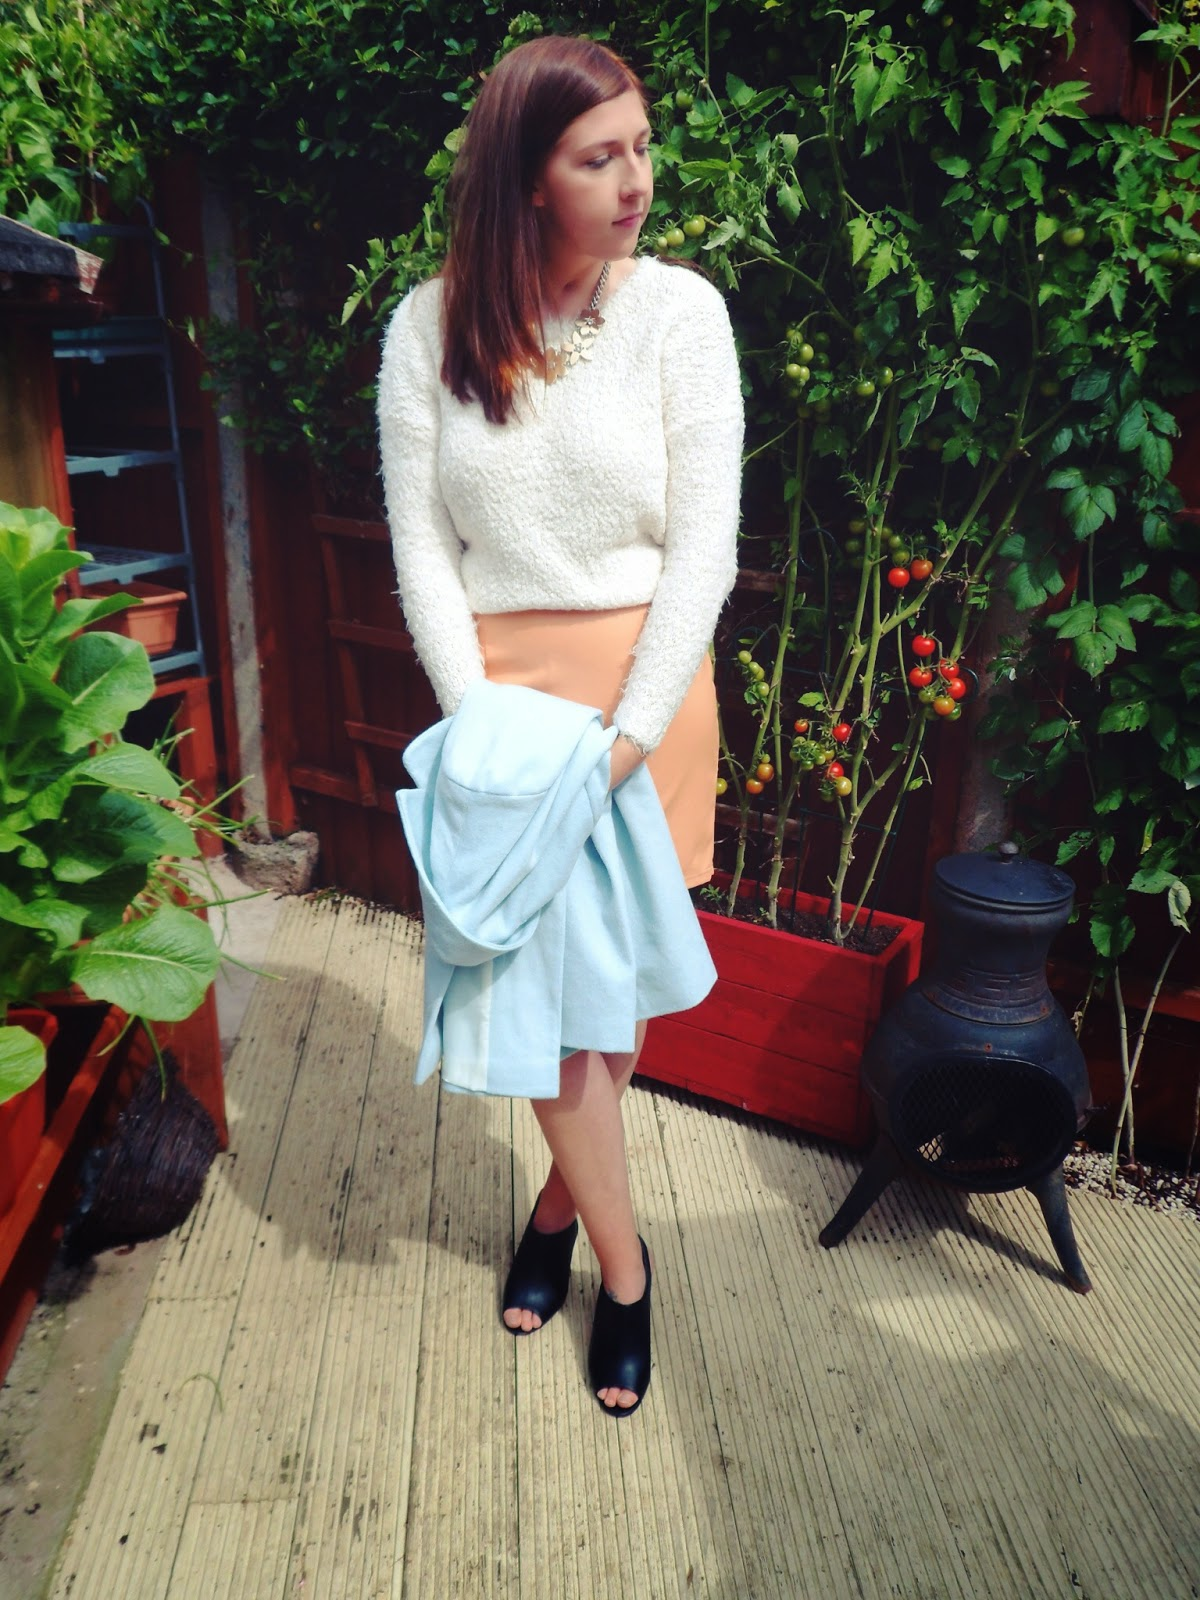 primark, autumn, winter, autumn/winter2014, ootd, Outfit of the Day, wiw, whatimwearing, whatibought, floral, necklace, shoppinghaul, fbloggers, fashionbloggers